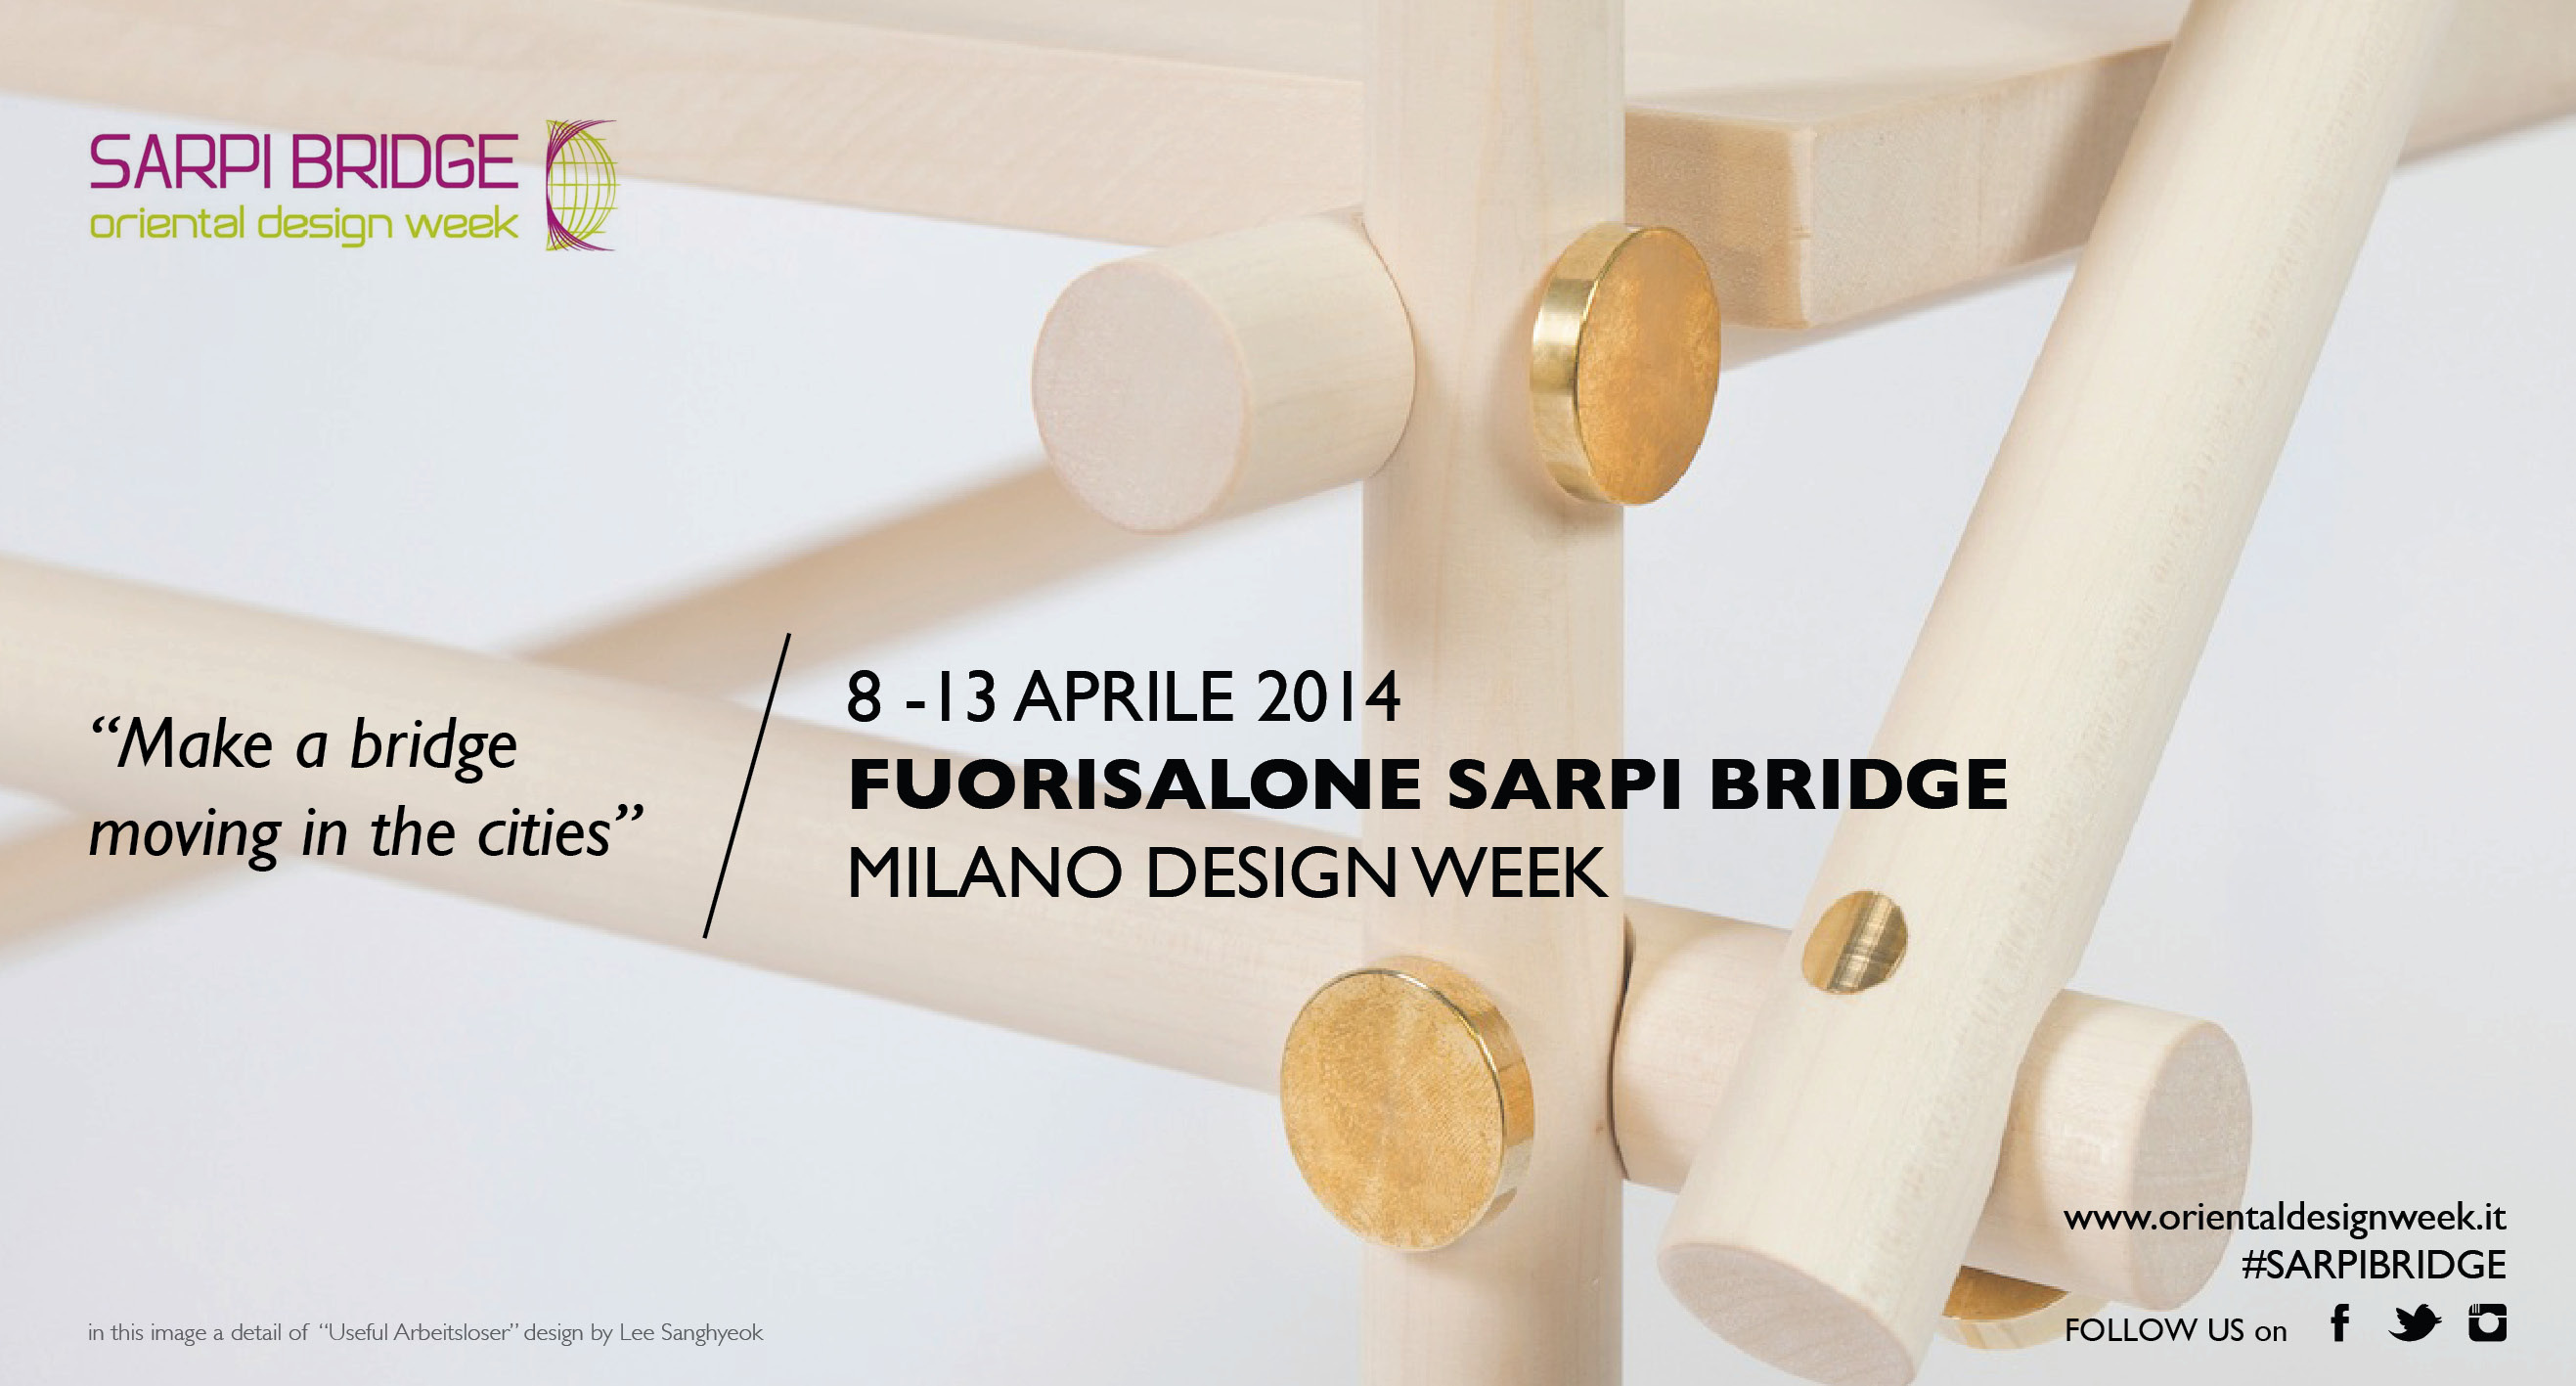 Sarpi Bridge - Oriental Design Week